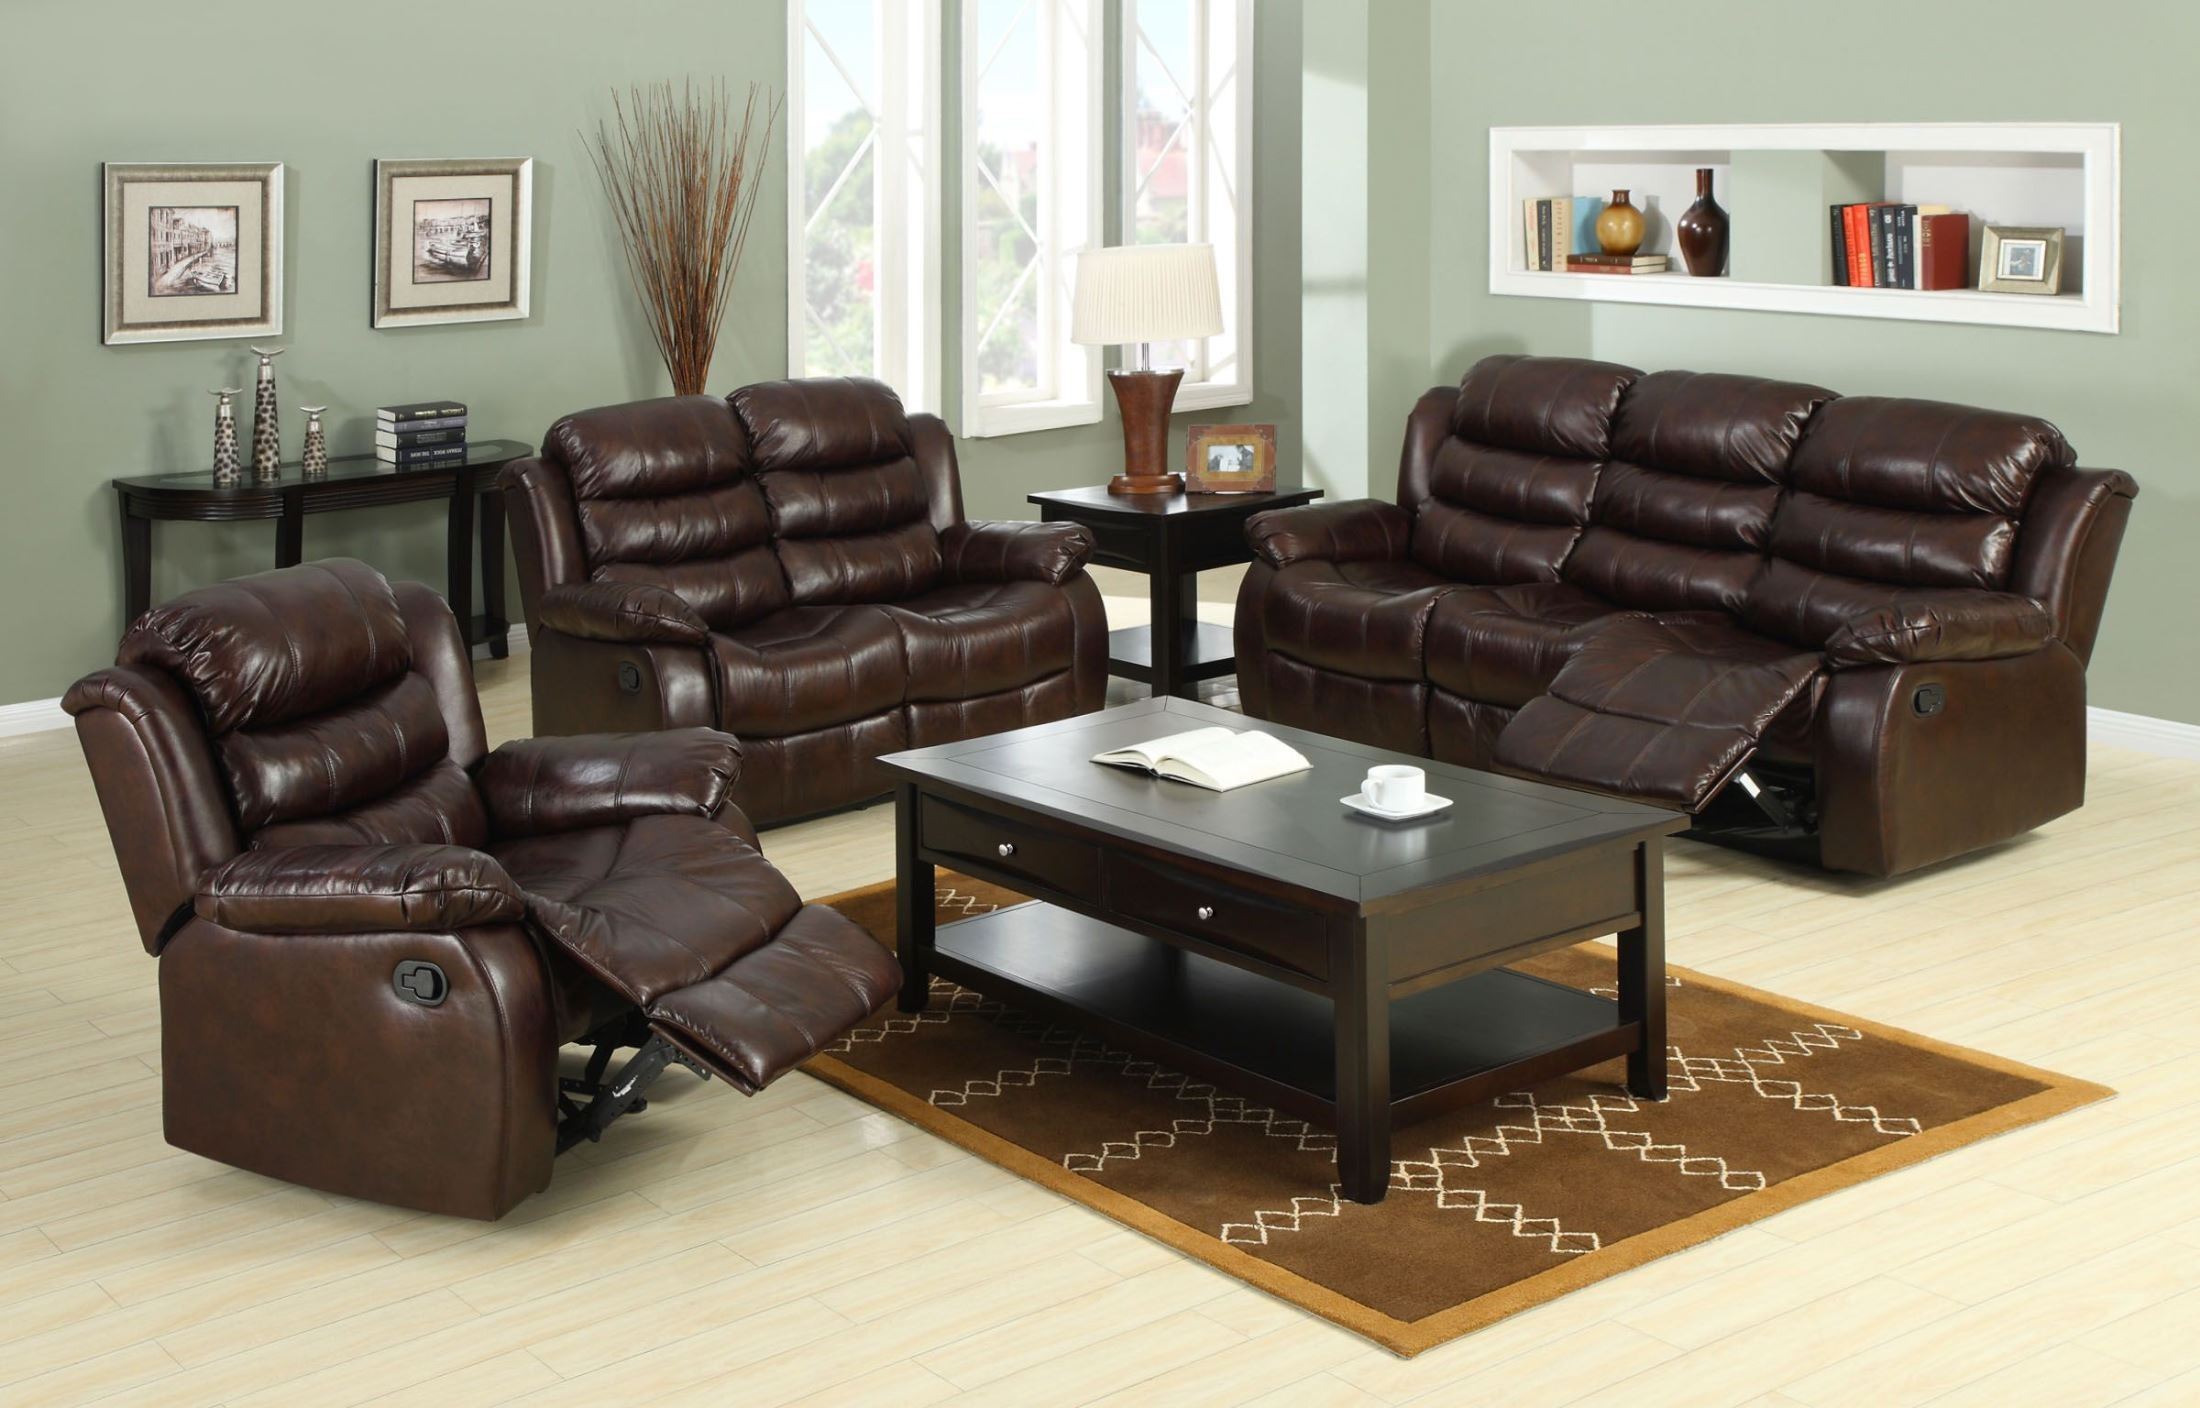 Berkshire rustic brown reclining living room set from - Rustic living room furniture sets ...